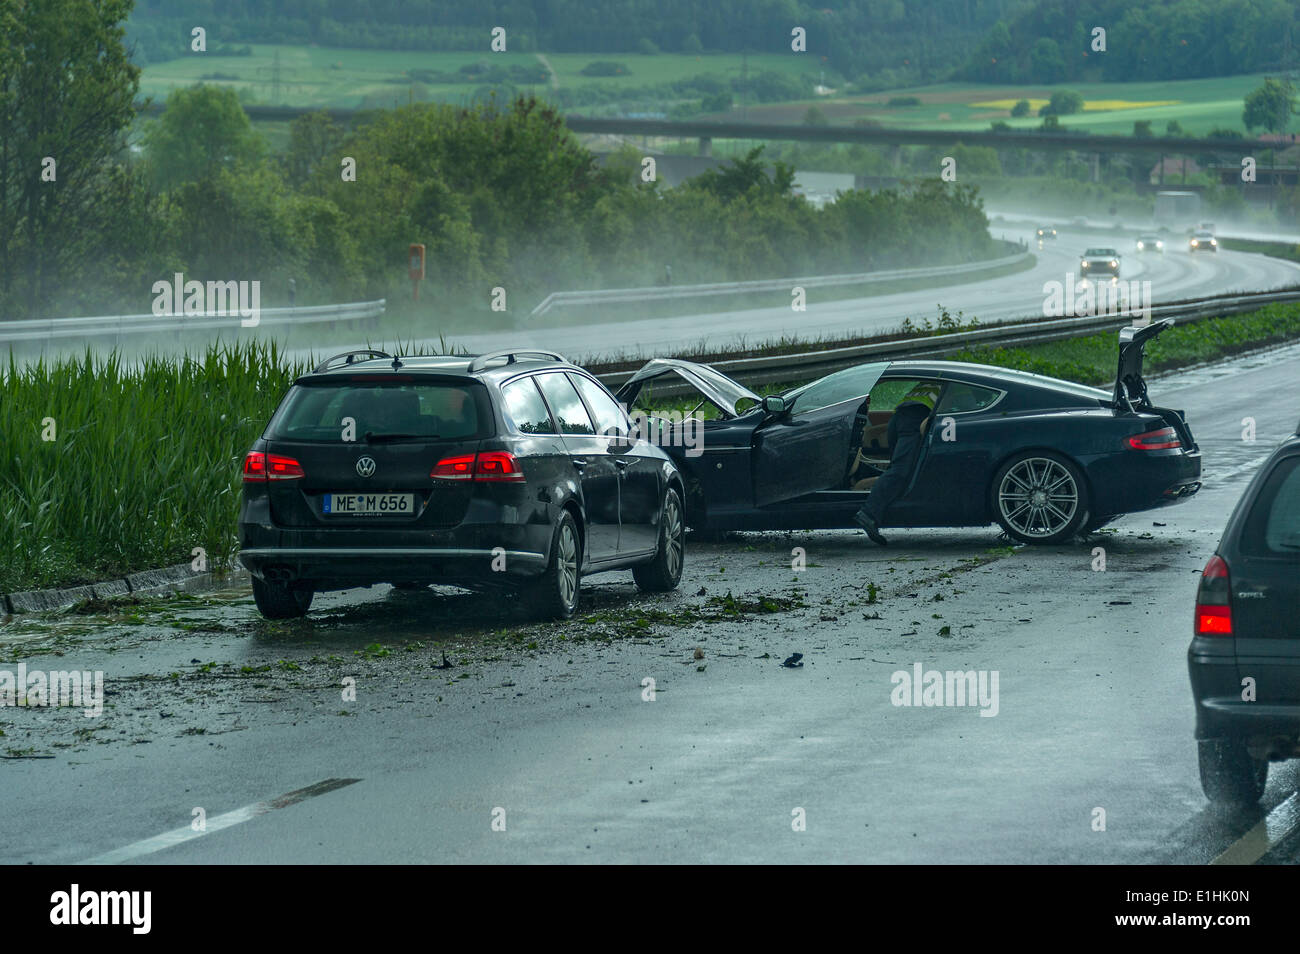 Pictures Of Car Accidents In The Rain